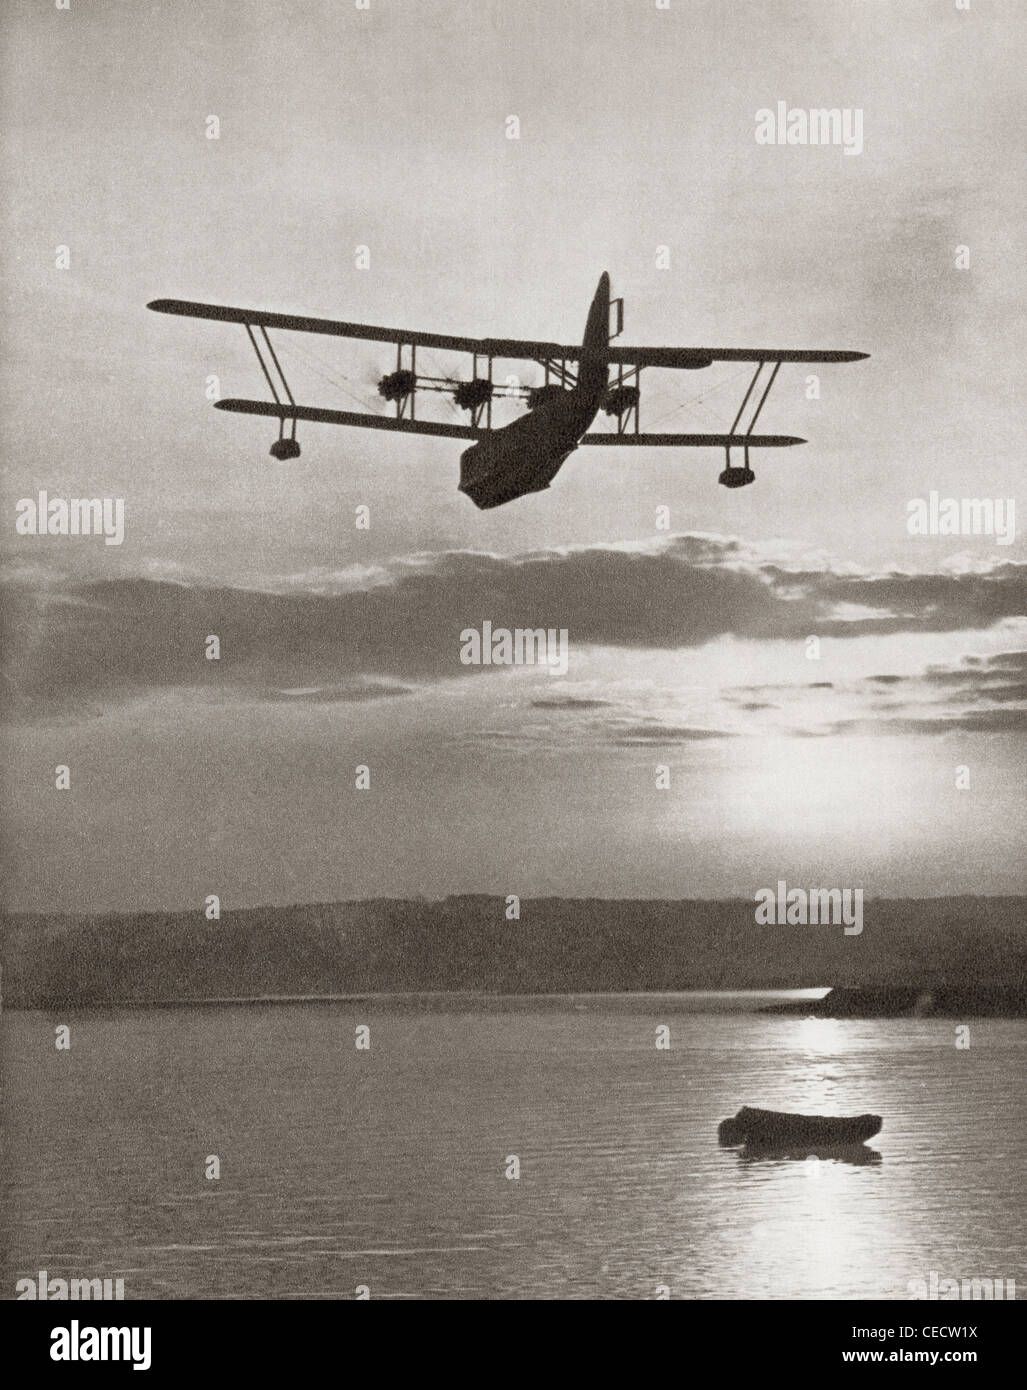 An Imperial Airlines Scipio Class flying boat c.1931. From The Story of 25 Eventful Years in Pictures, published - Stock Image